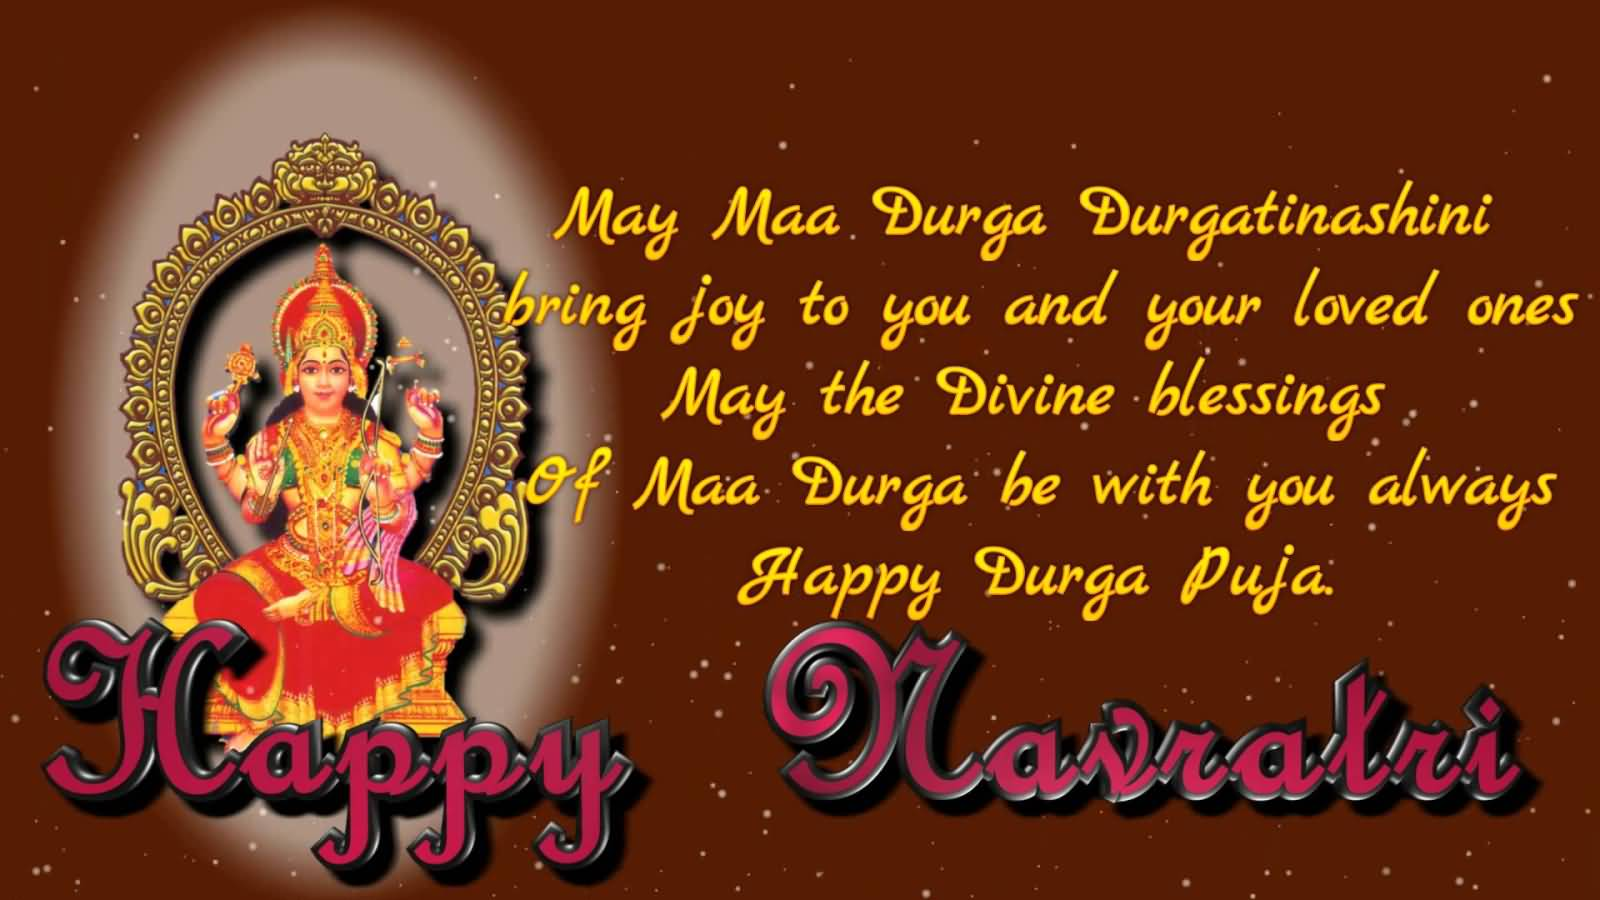 Happy navratri may maa durga durgatinashini bring joy to you and happy navratri may maa durga durgatinashini bring joy to you and your loved ones may the kristyandbryce Choice Image